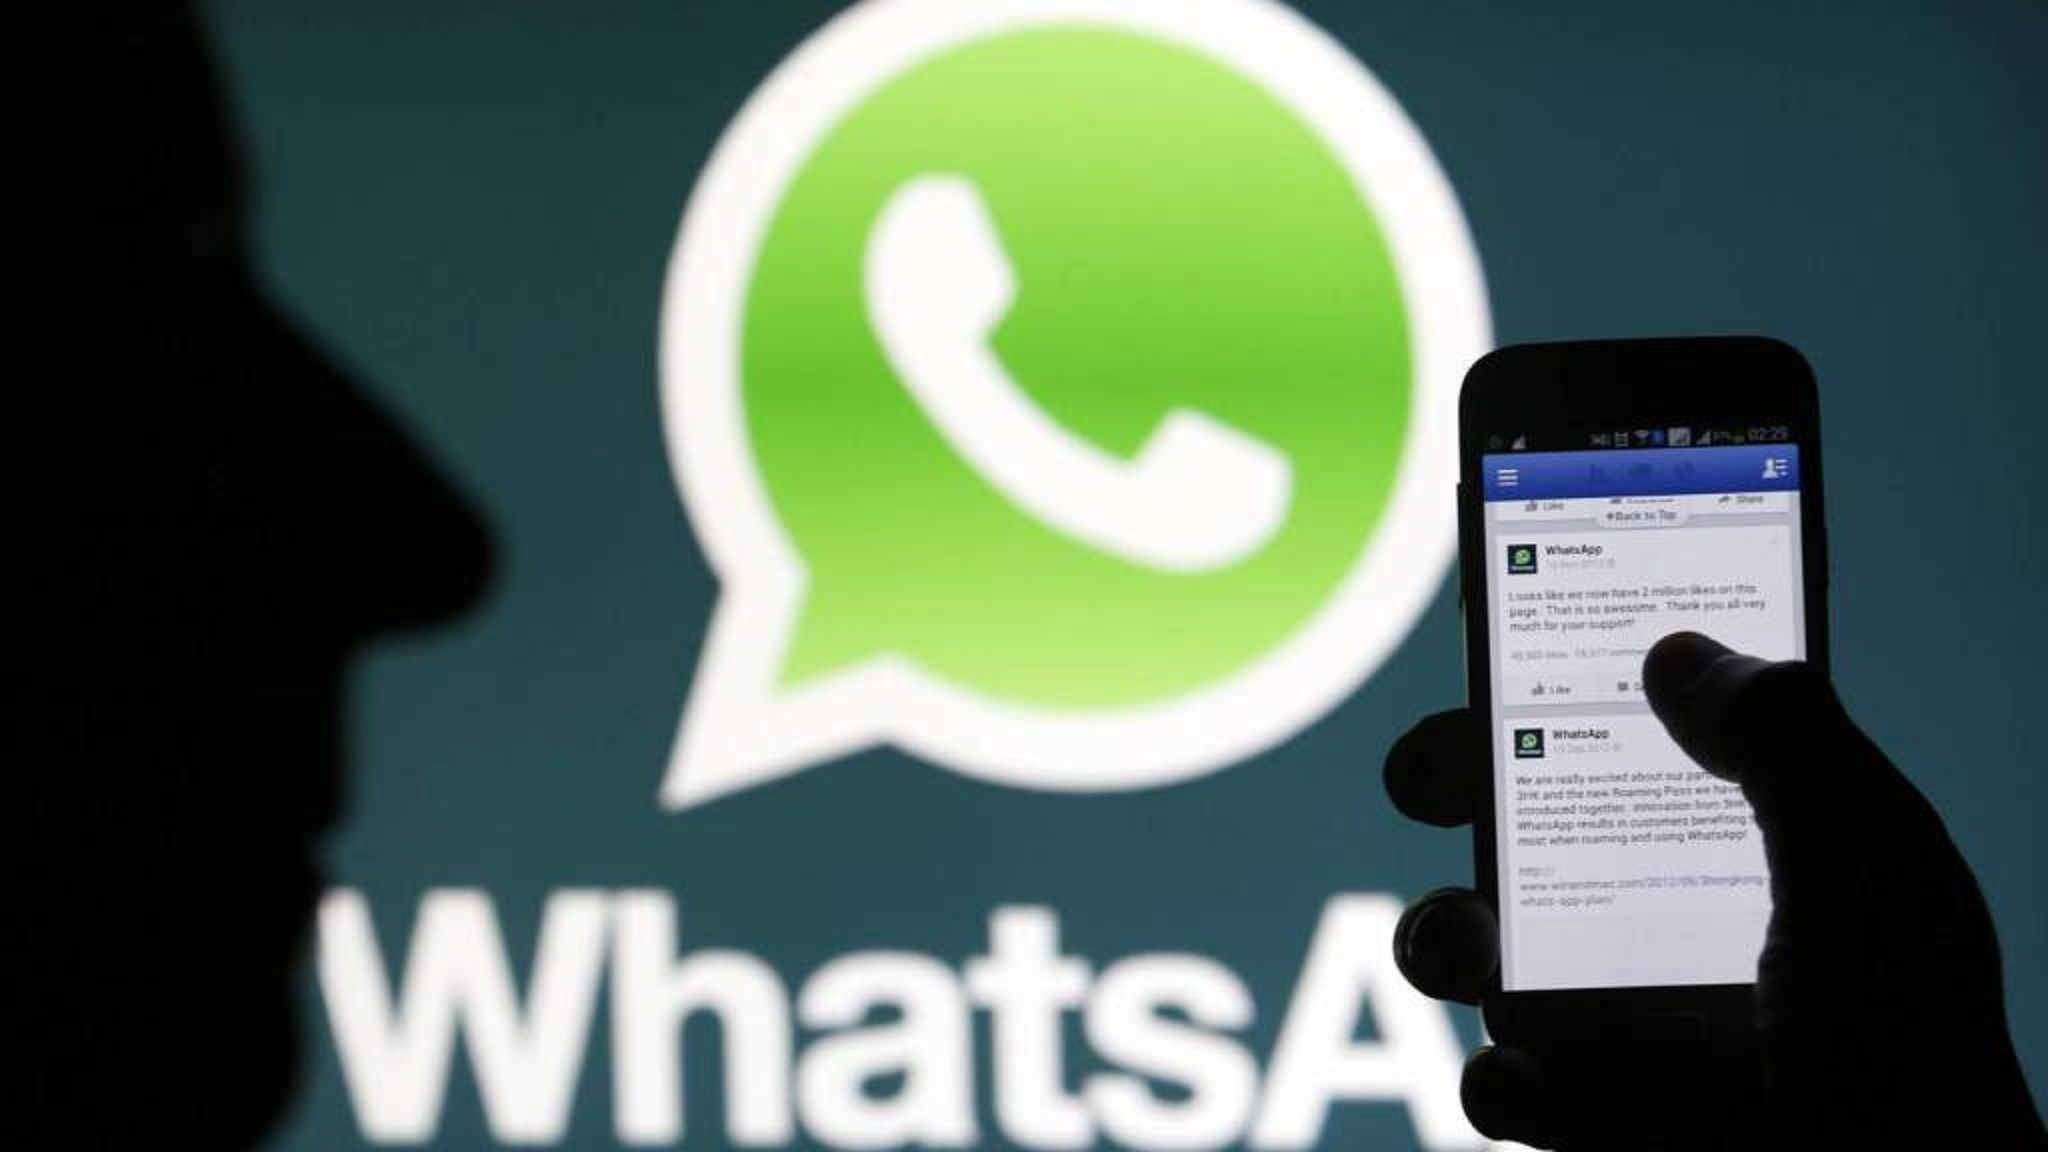 Multan a WhatsApp por compartir datos con Facebook